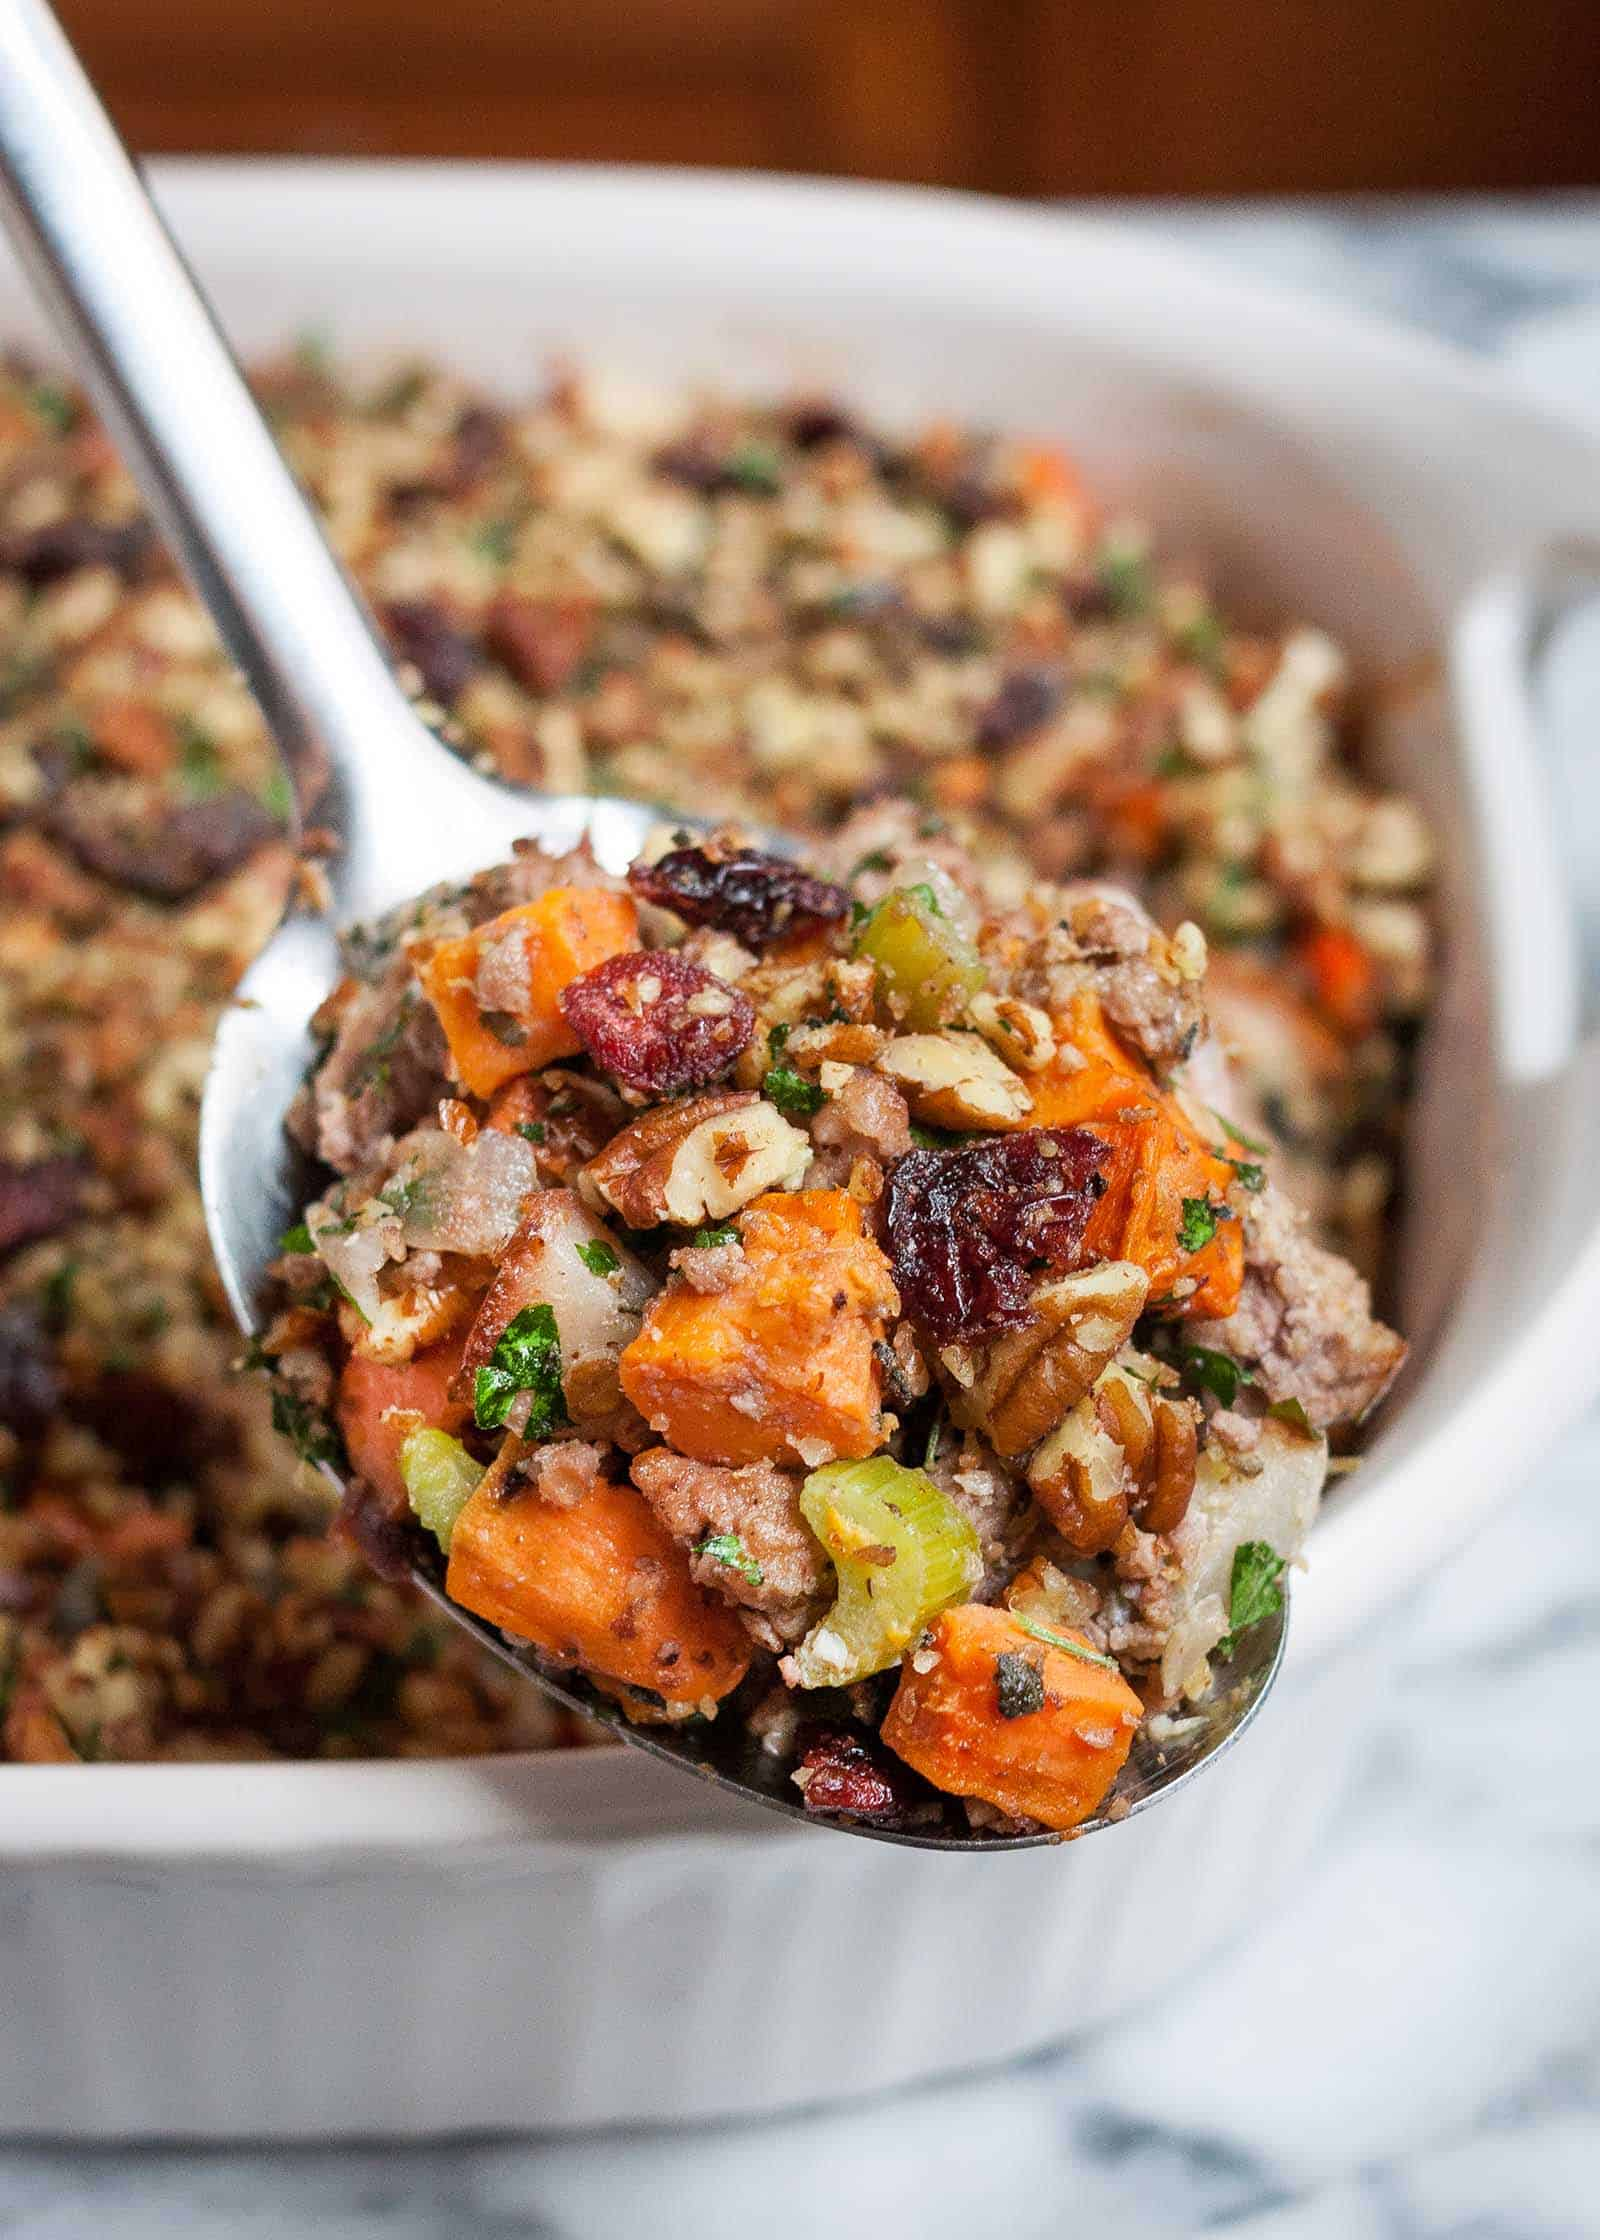 Sweet potato and pork stuffing